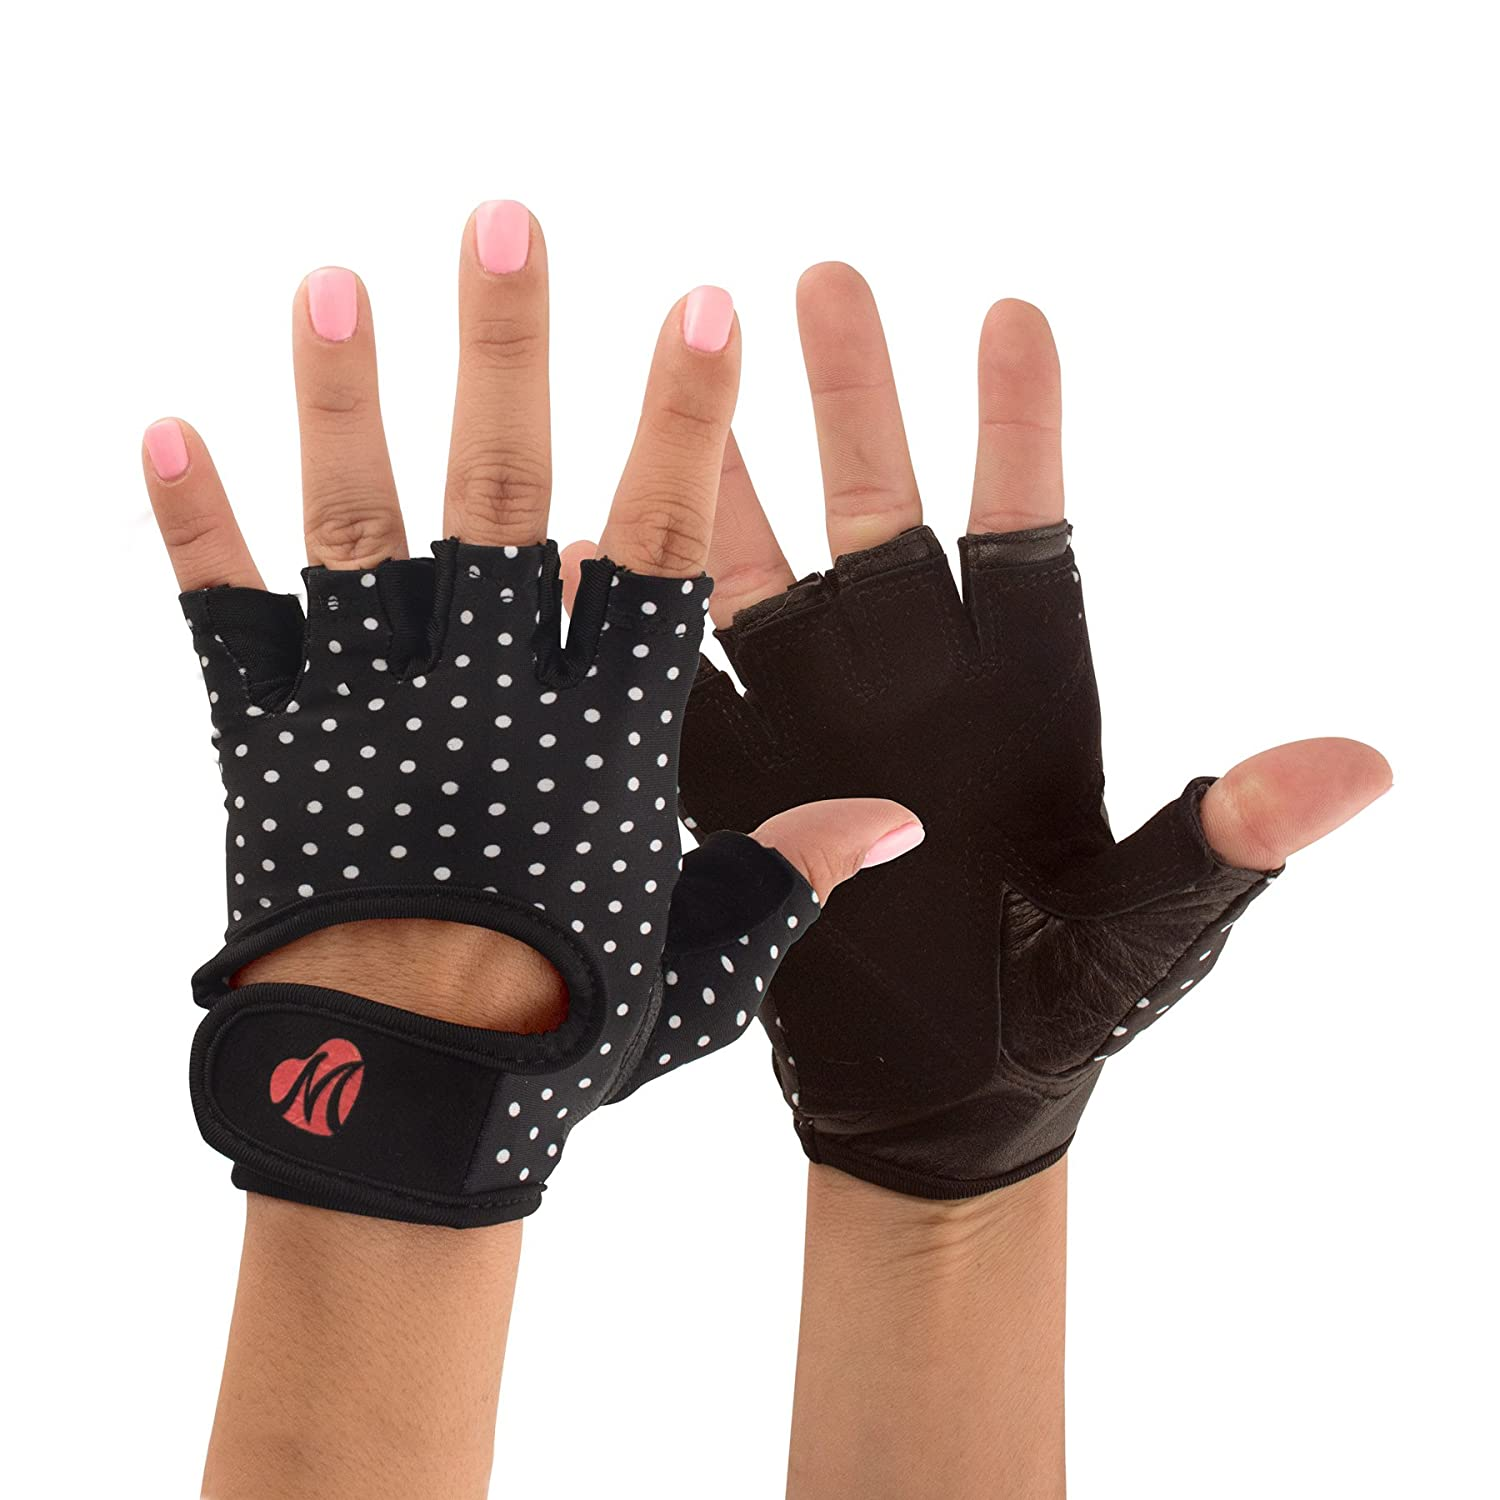 Mellie Gloves Gym Gloves for Women Polka Dots